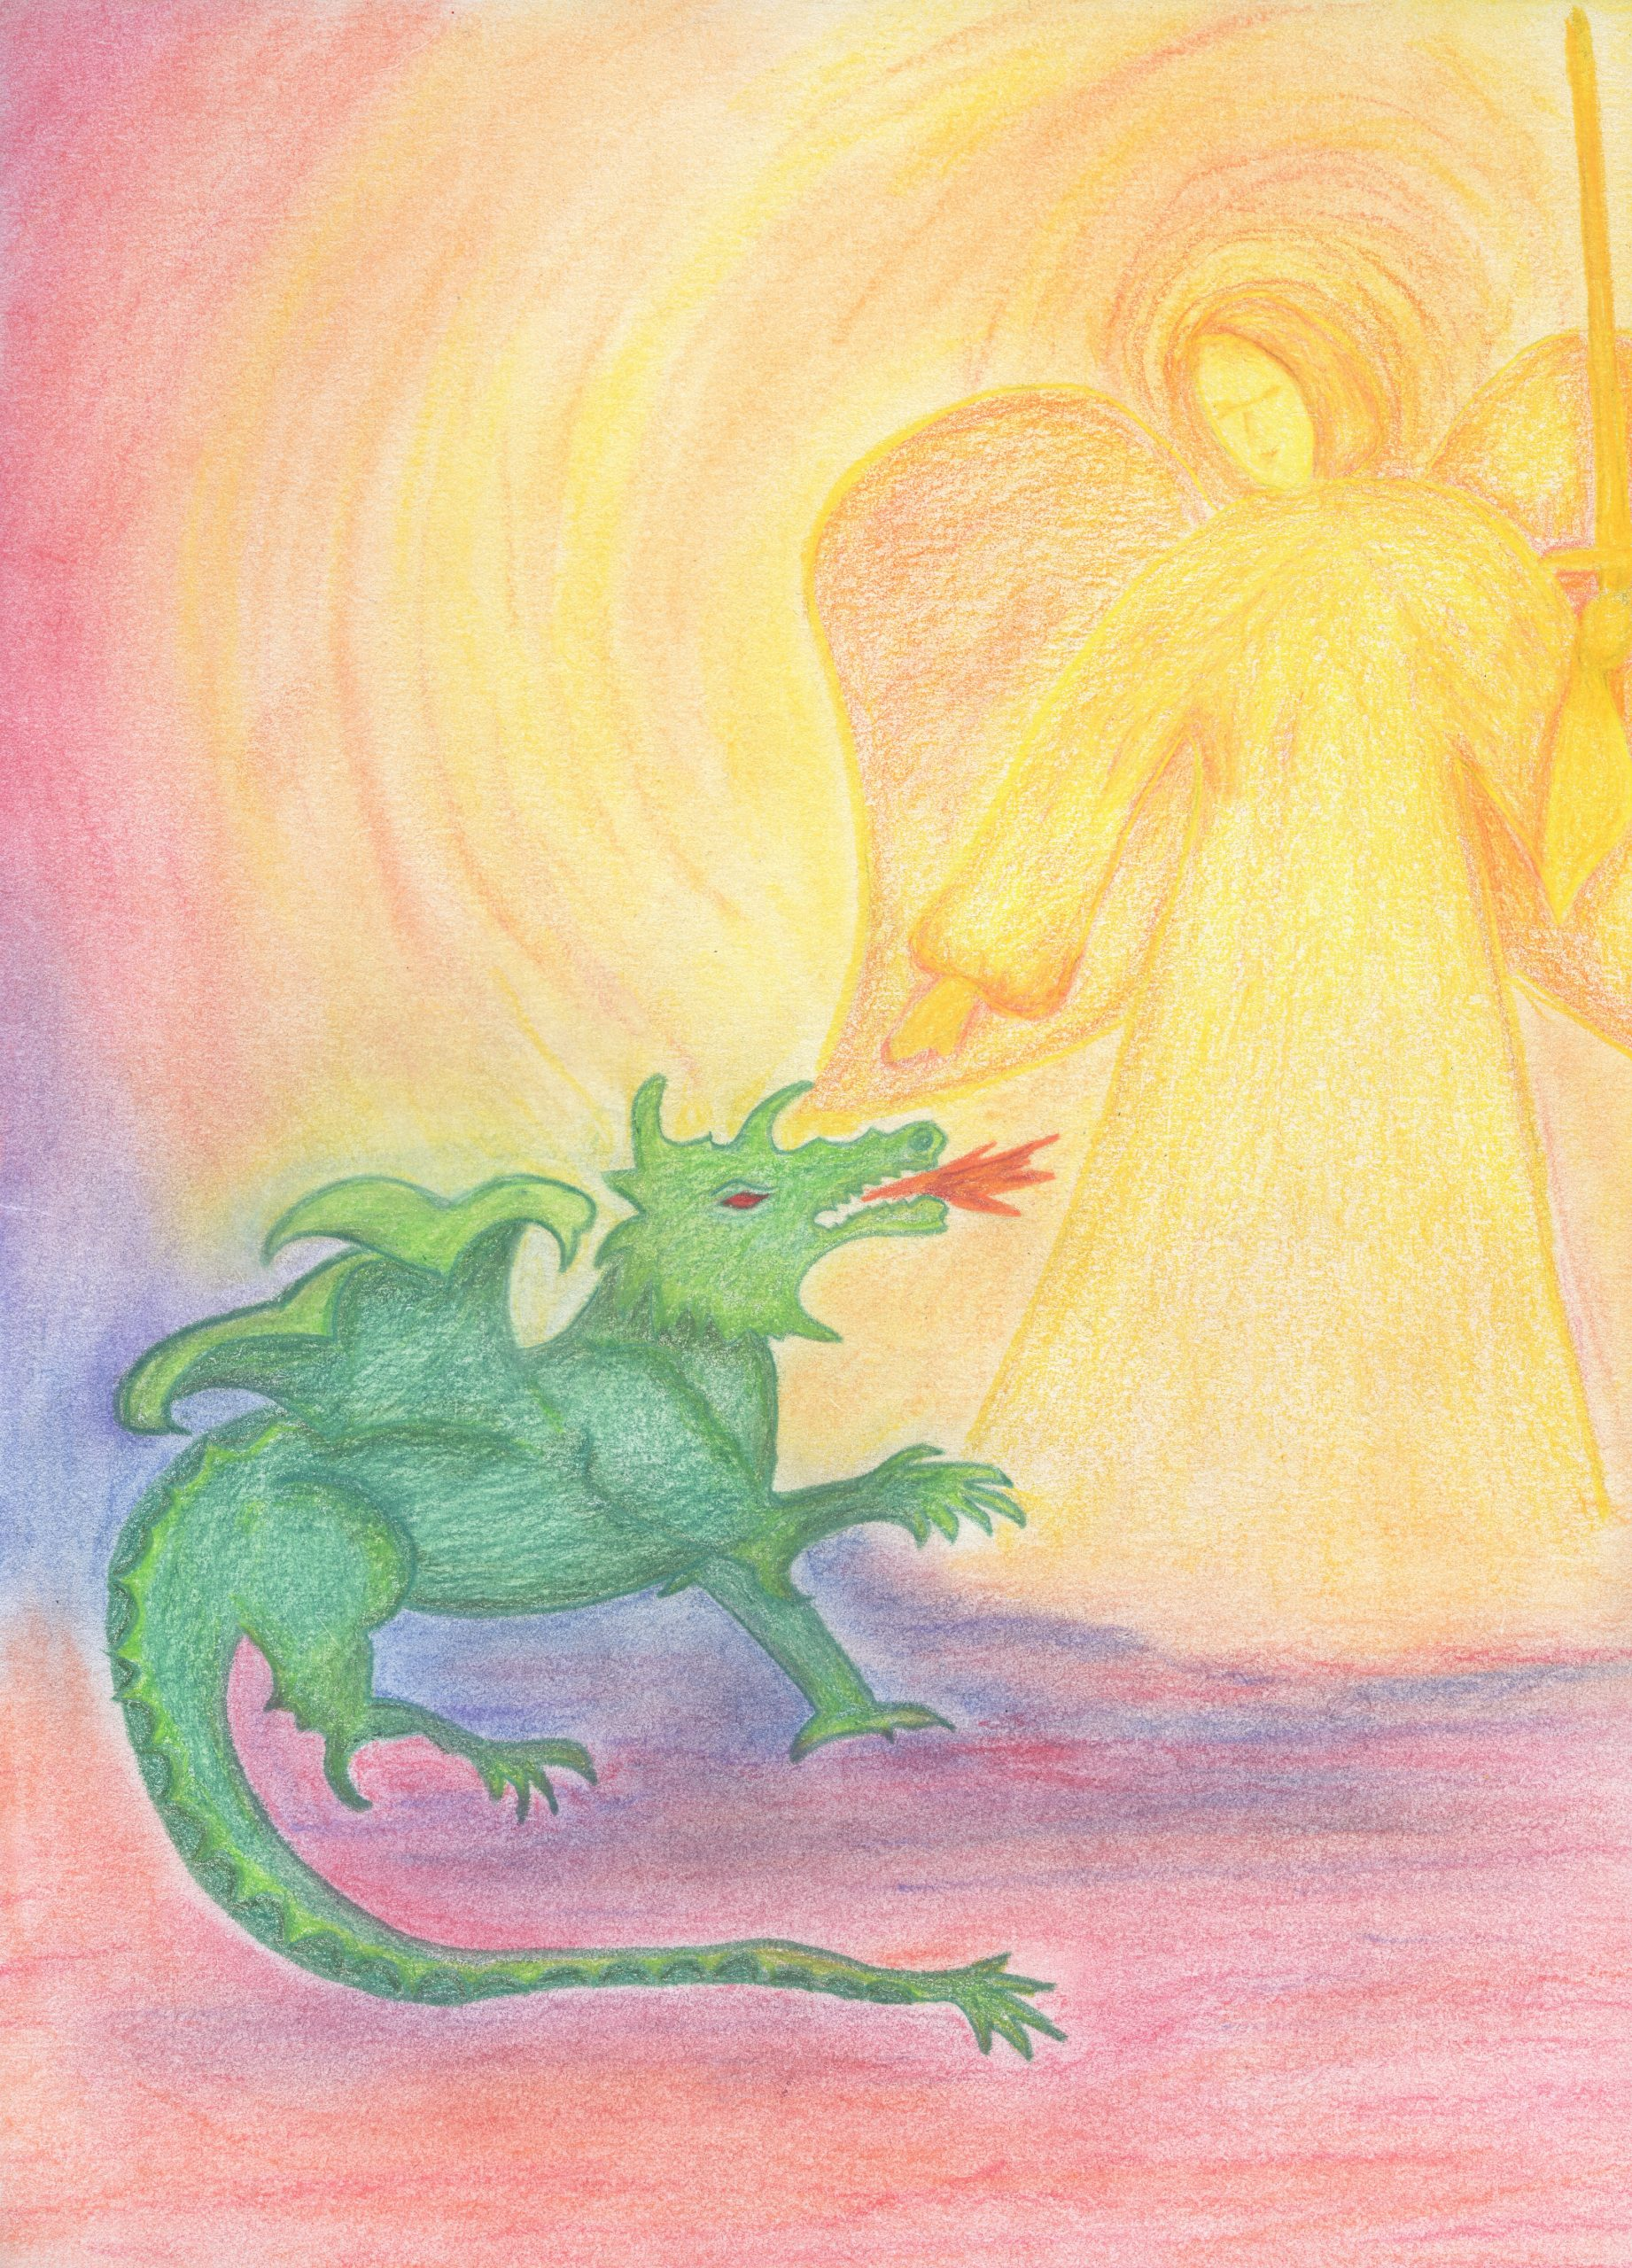 St. Micahel and the Dragon - Pencil and Pastel - 9 X 12 - $130